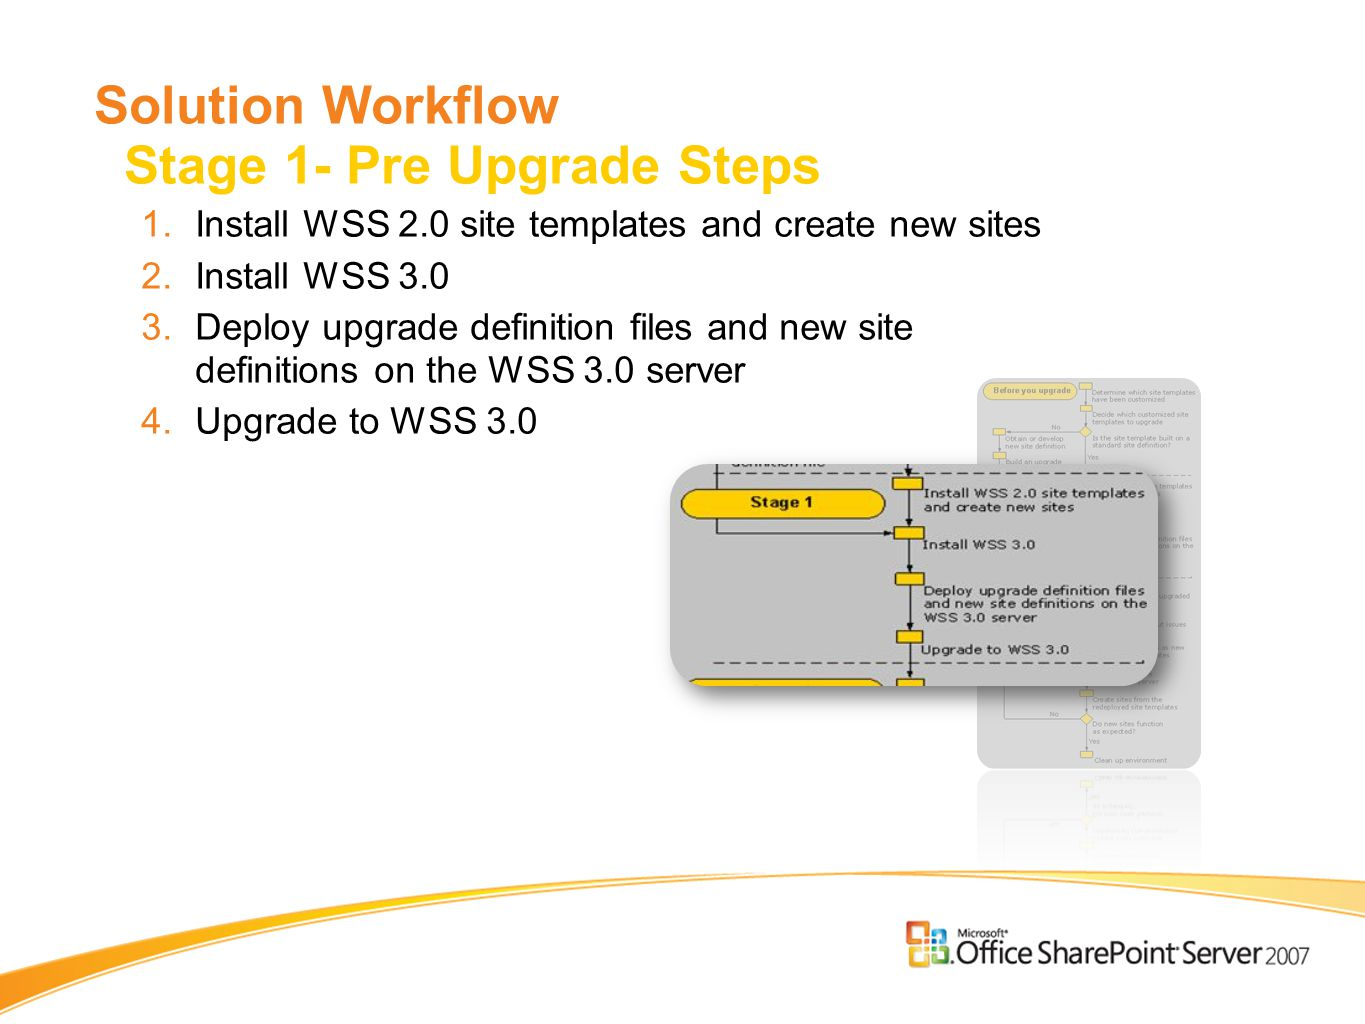 Solution Workflow Stage 1- Pre Upgrade Steps 1.Install WSS 2.0 site templates and create new sites 2.Install WSS 3.0 3.Deploy upgrade definition files and new site definitions on the WSS 3.0 server 4.Upgrade to WSS 3.0